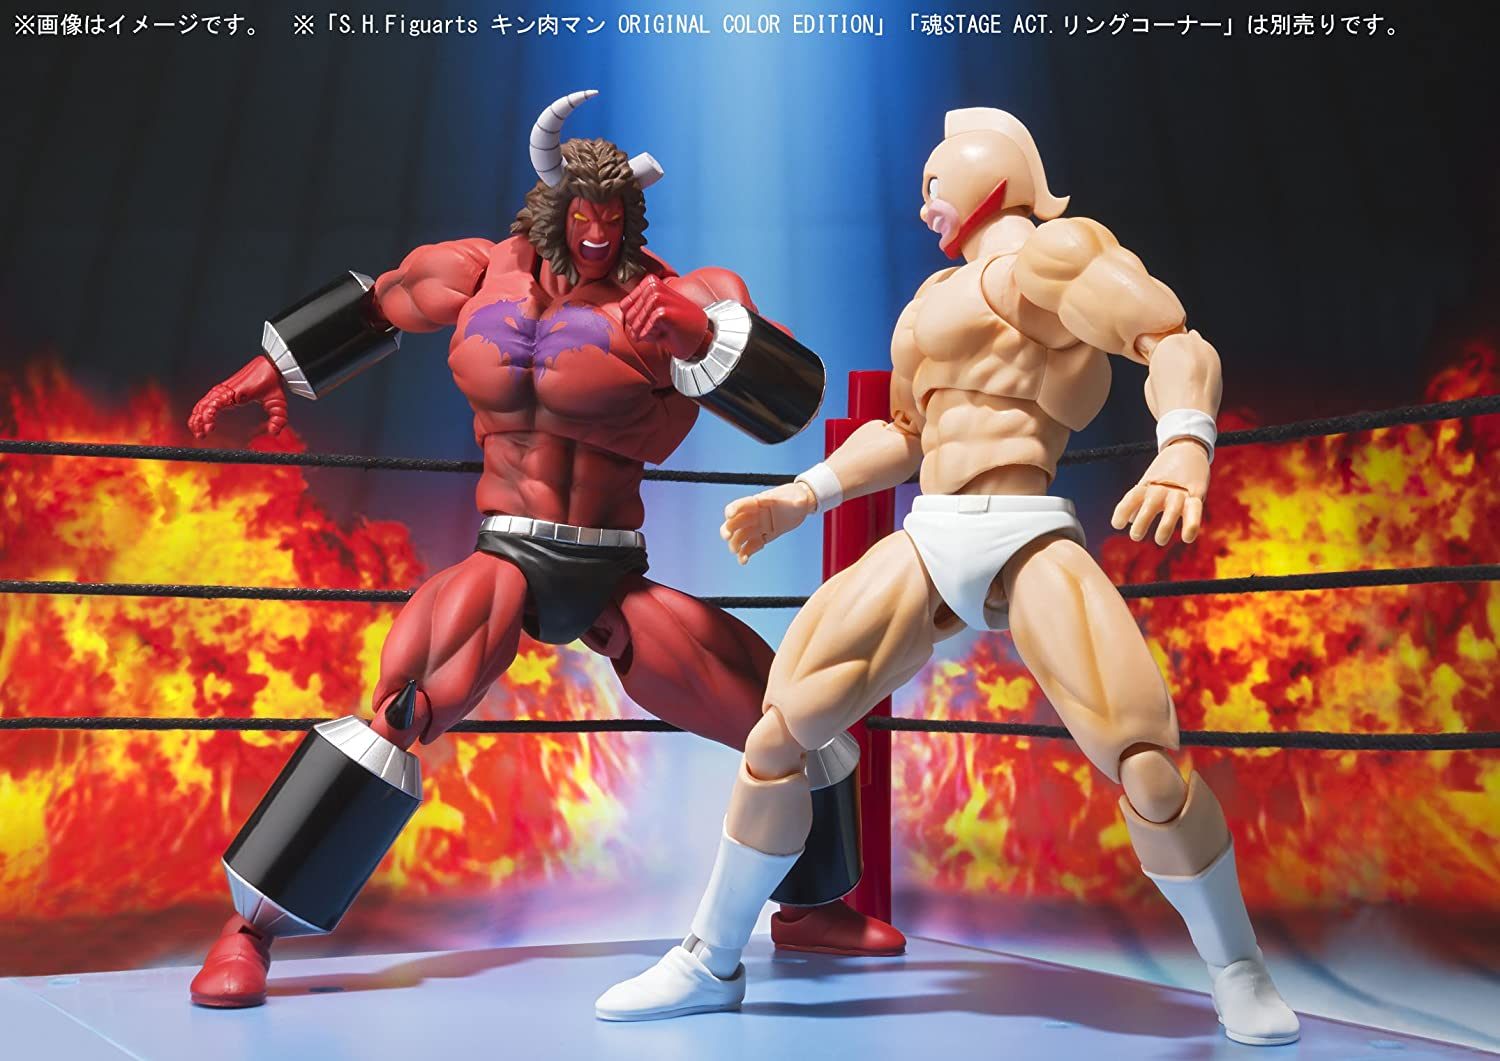 Figuarts Buffalo Man Kinunikuman Action Figure Bluefin Distribution Toys BAN25866 Bandai Tamashii Nations S.H